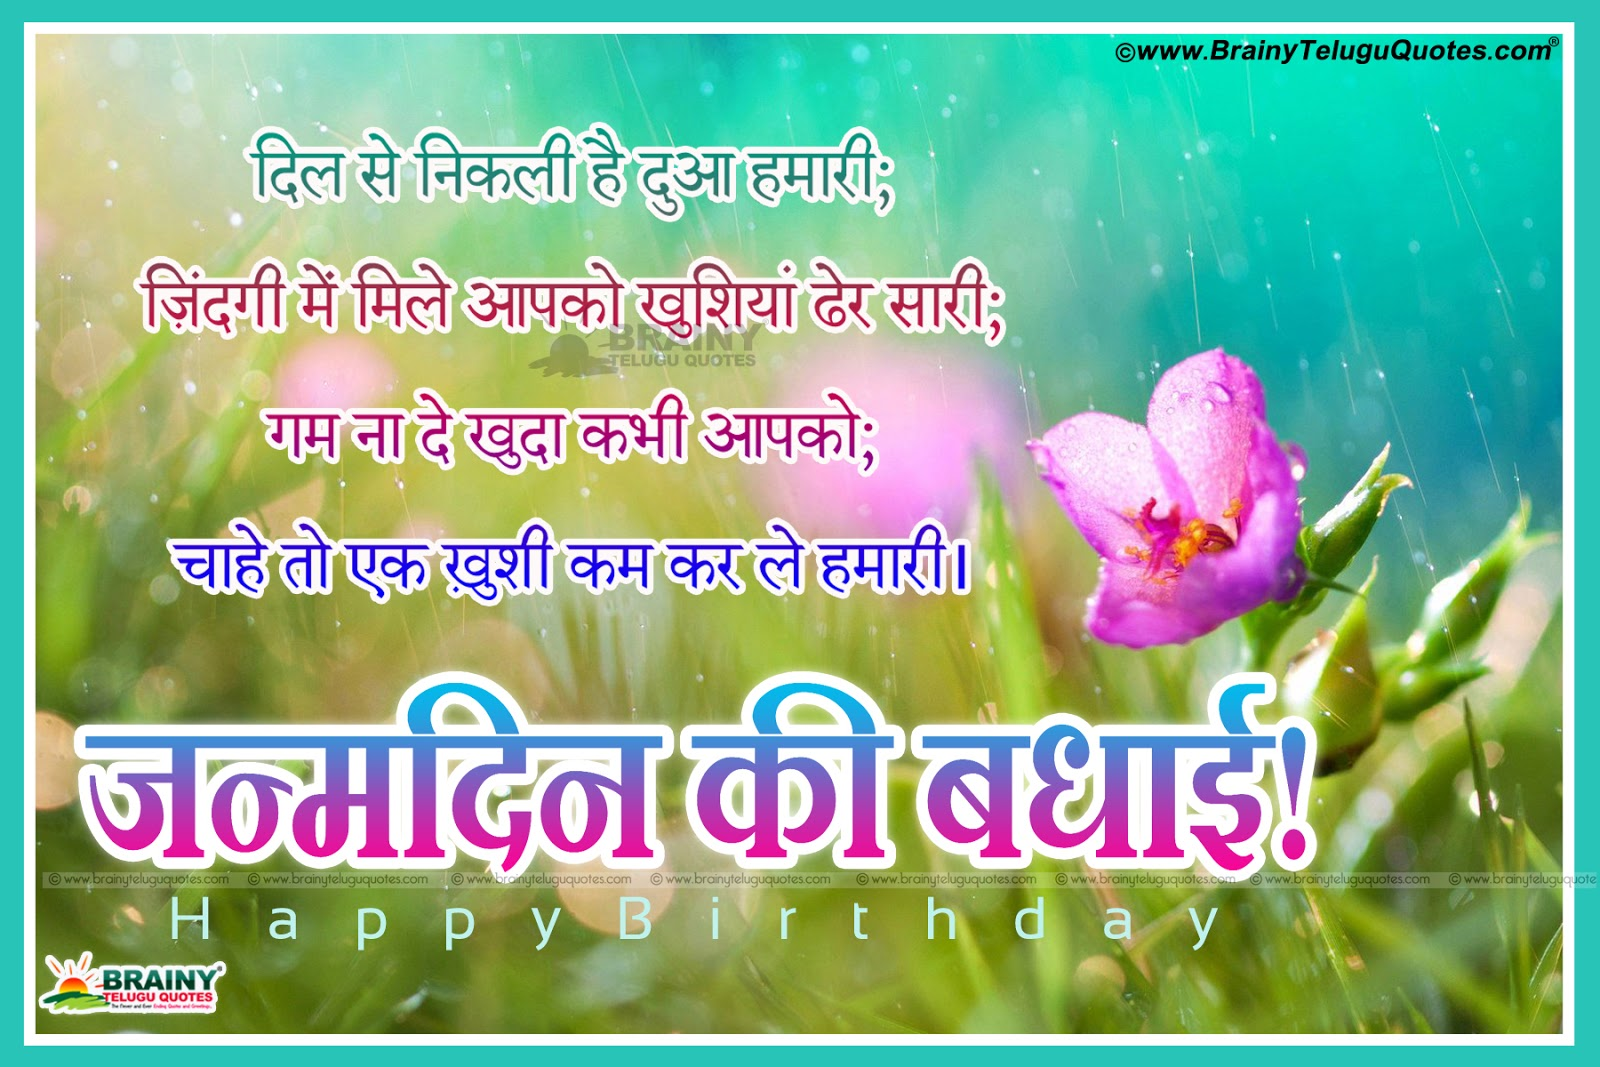 Birthday Wishes Images For Friend In Hindi – Birthday Greetings in Hindi